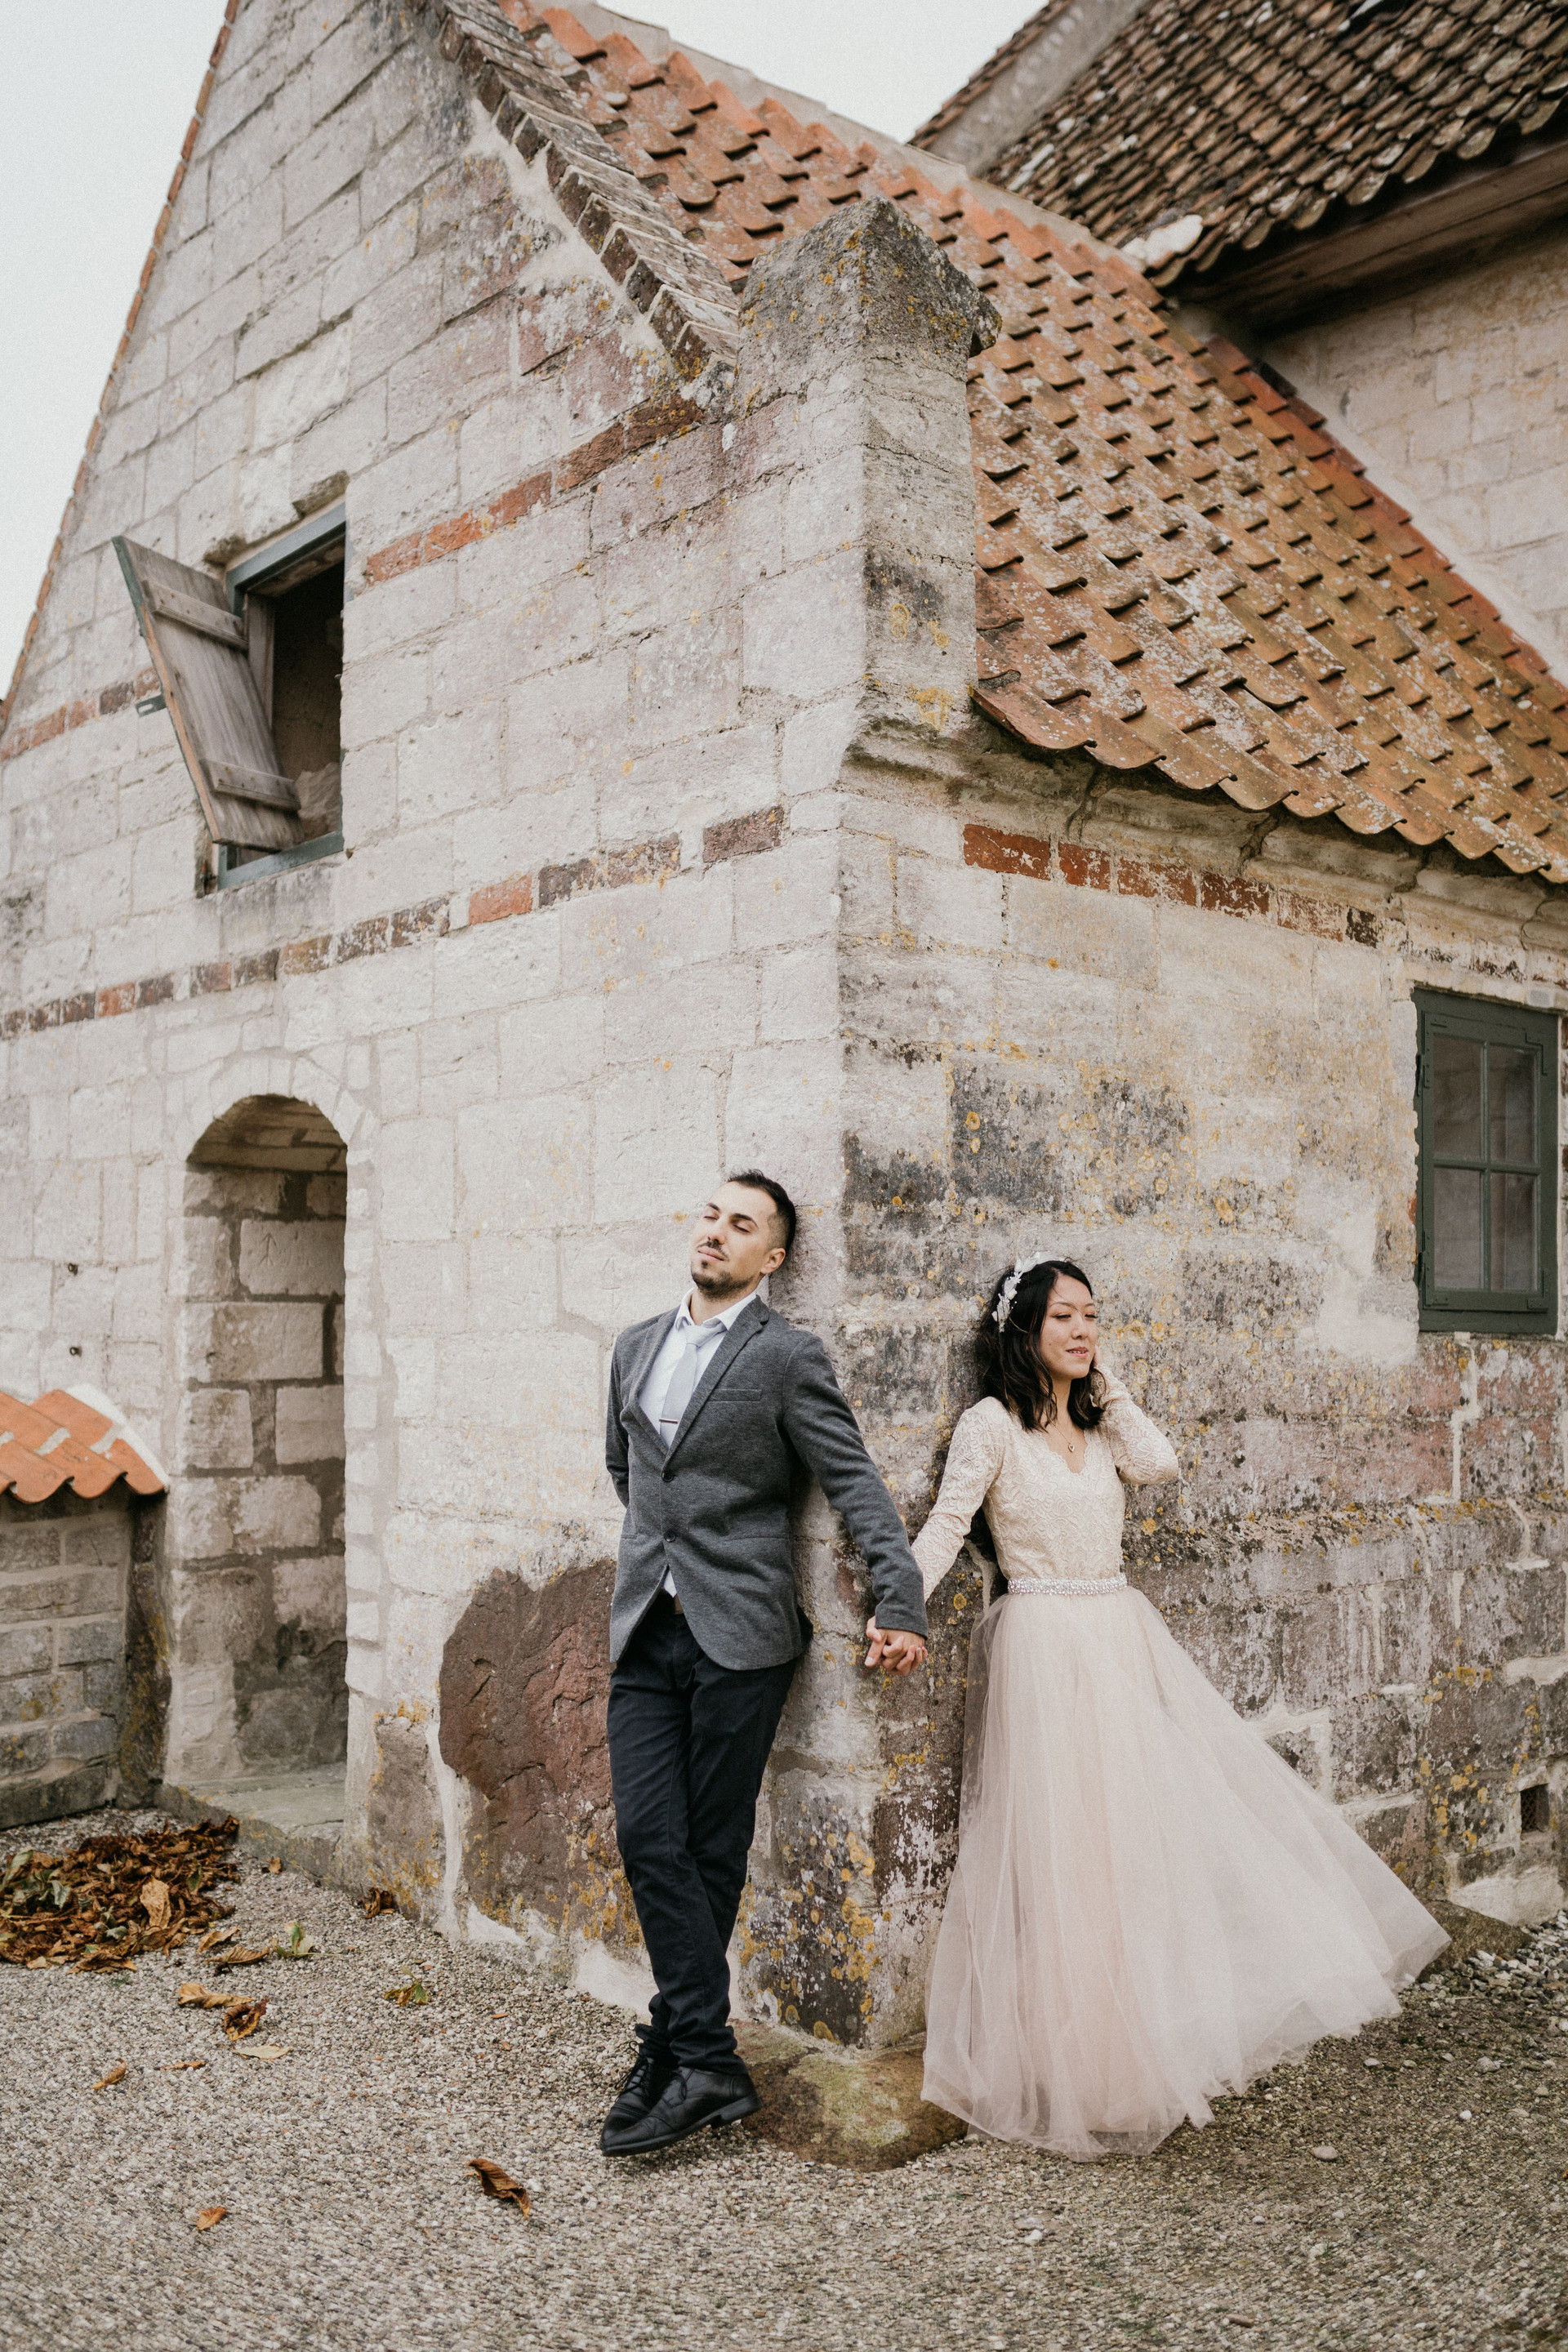 A couple posing at the Old Hojerup Church during their elopement abroad, one of Denmark's best destination wedding locations.